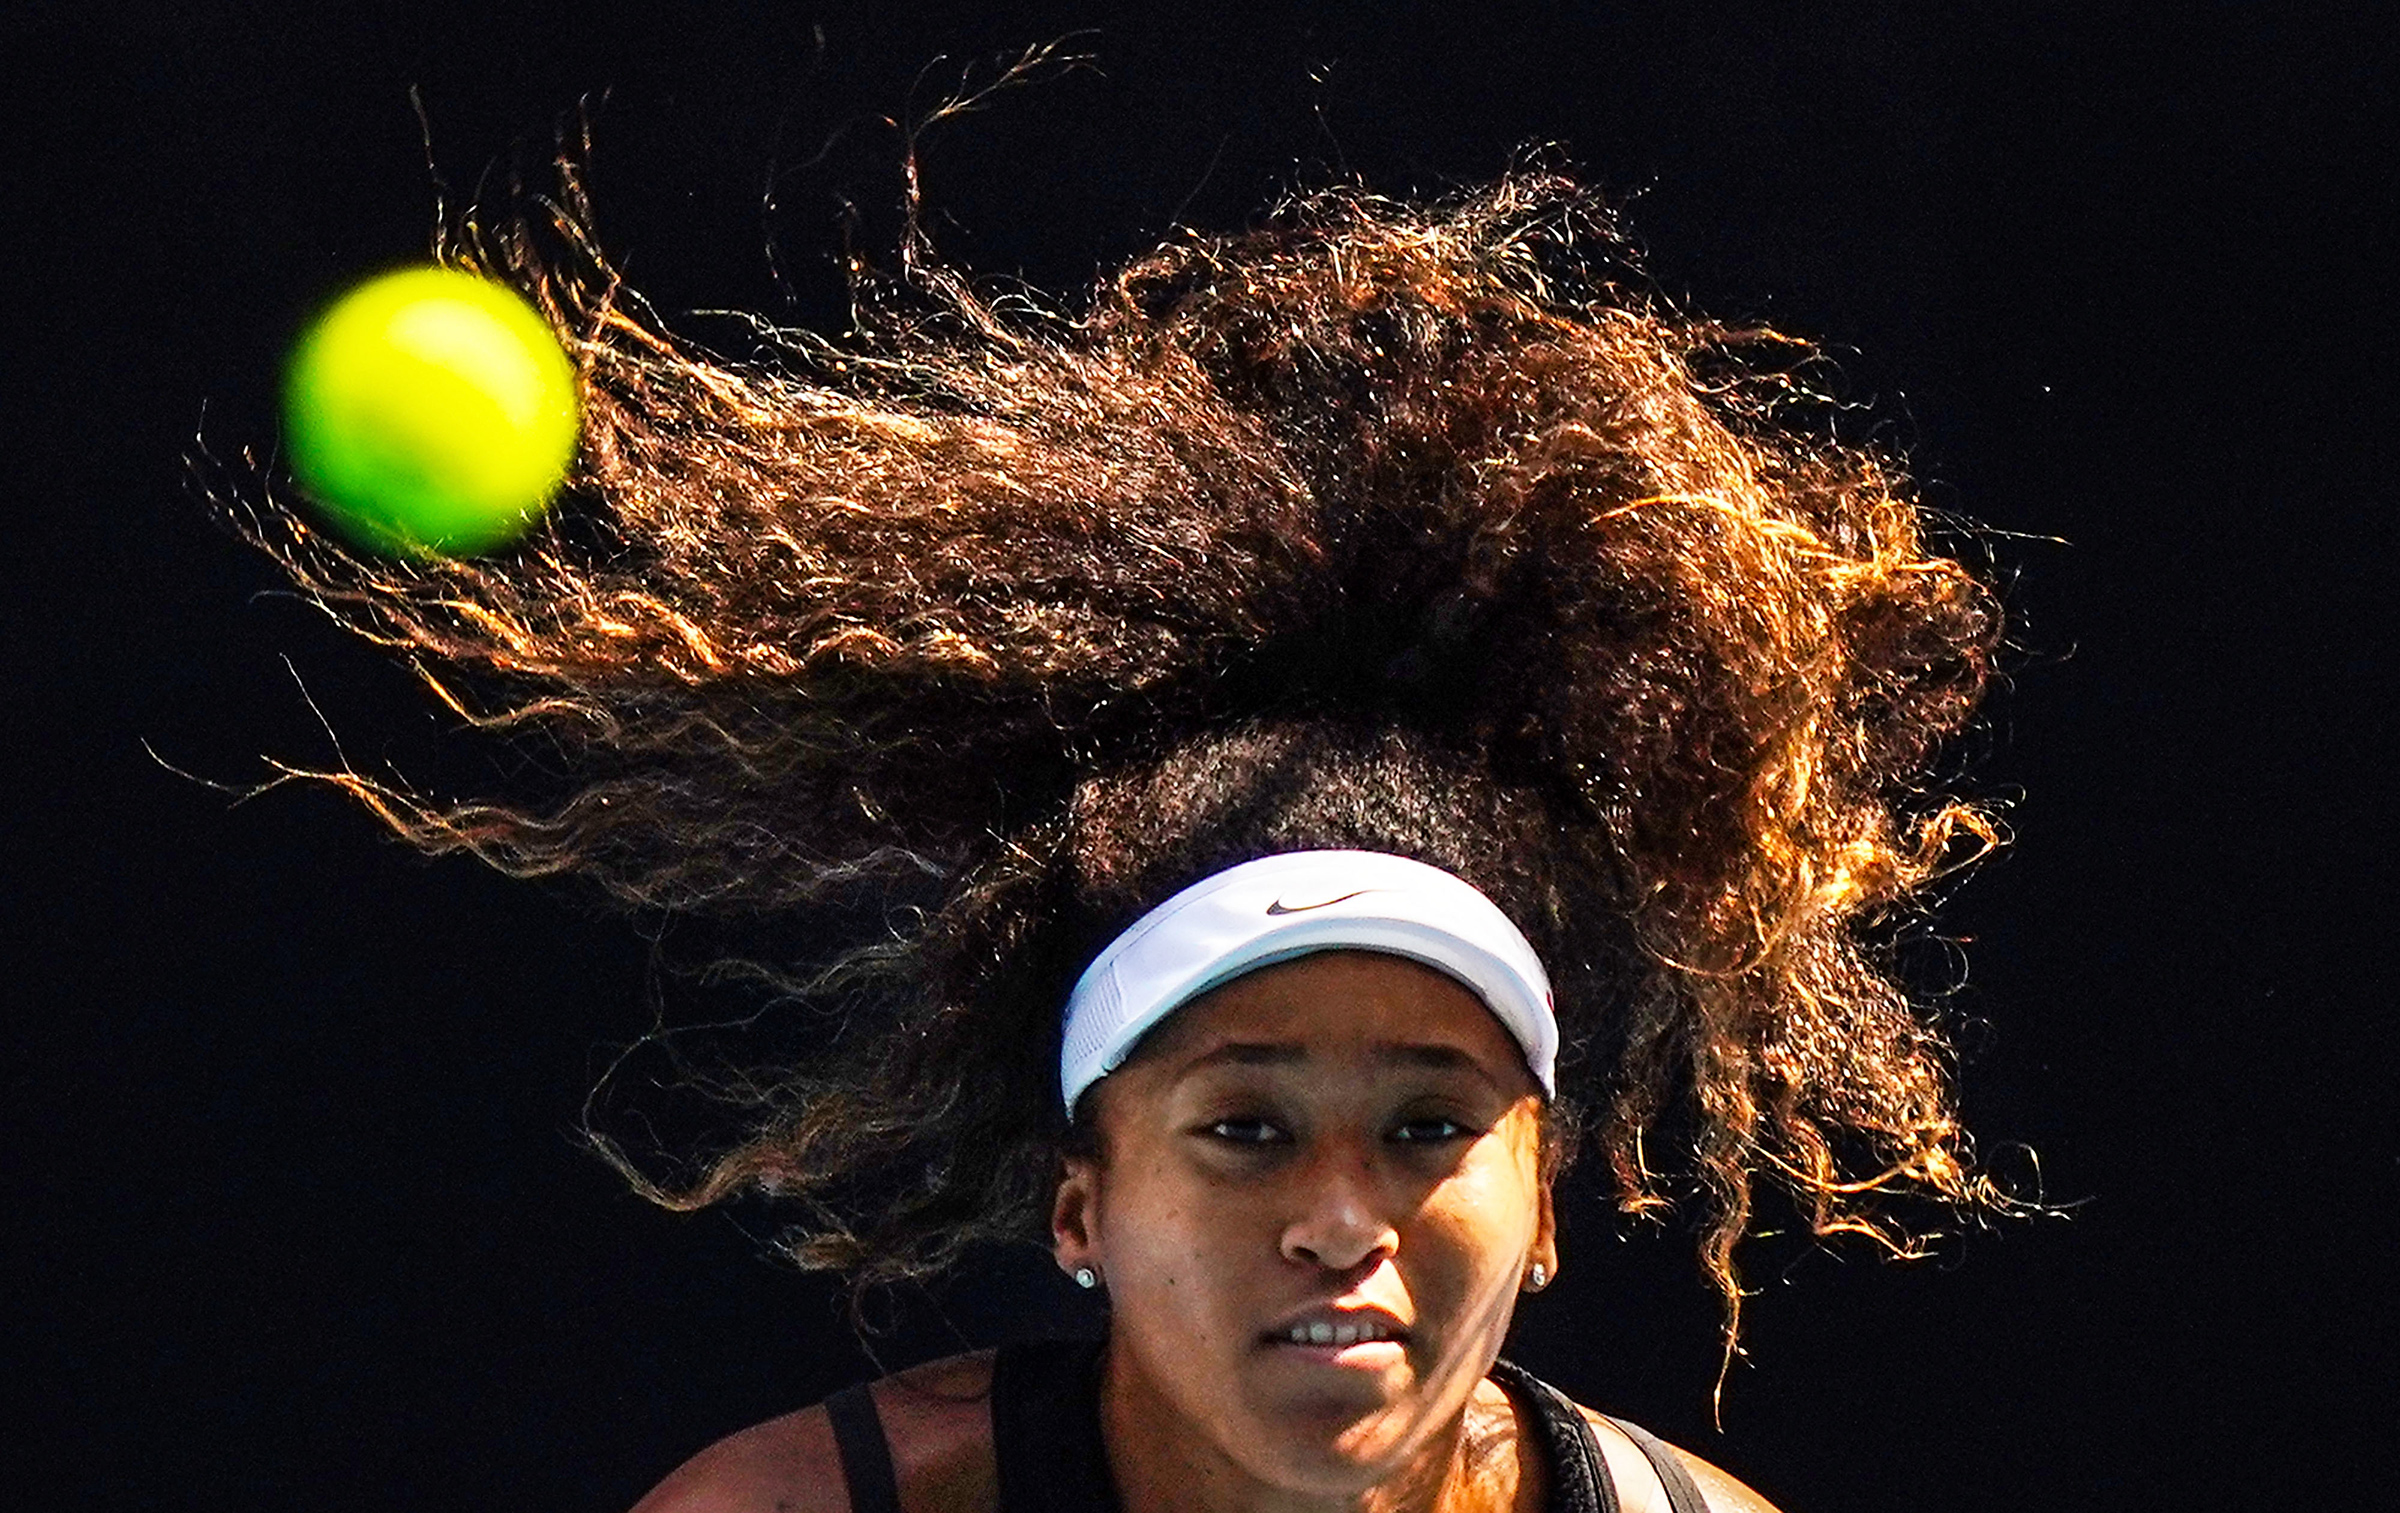 Naomi Osaka of Japan takes part in an Australian Open practice session in Melbourne on Jan. 18.